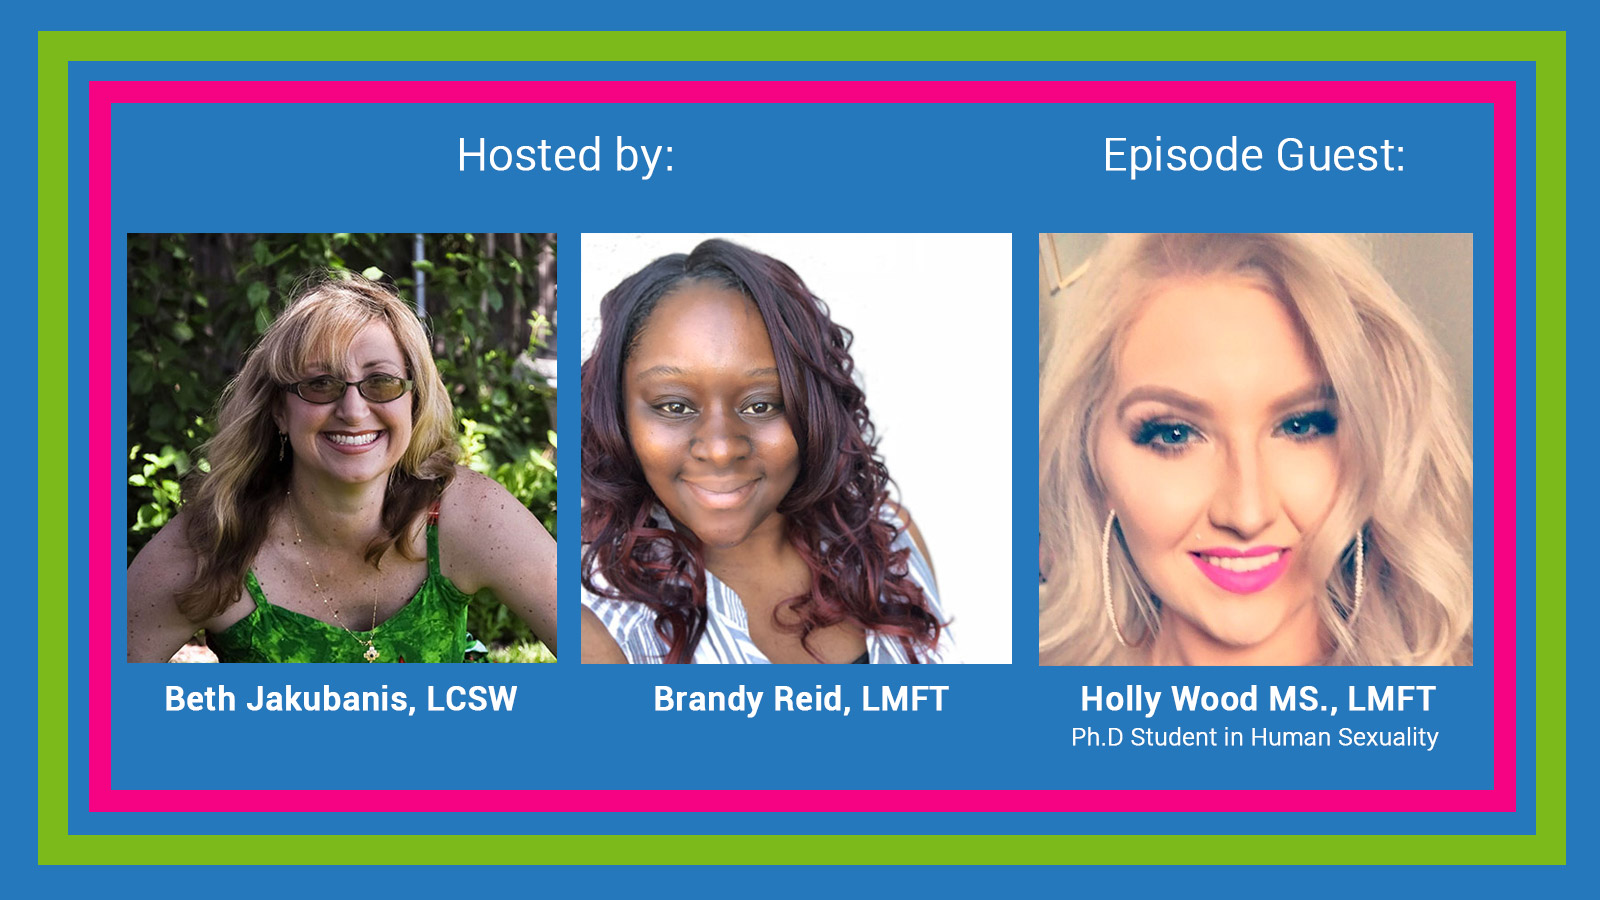 Hosted by: Beth Jakubanis, LCSW and Brandy Reed, LMFT - Episode Guest Holly Wood MS., LMFT